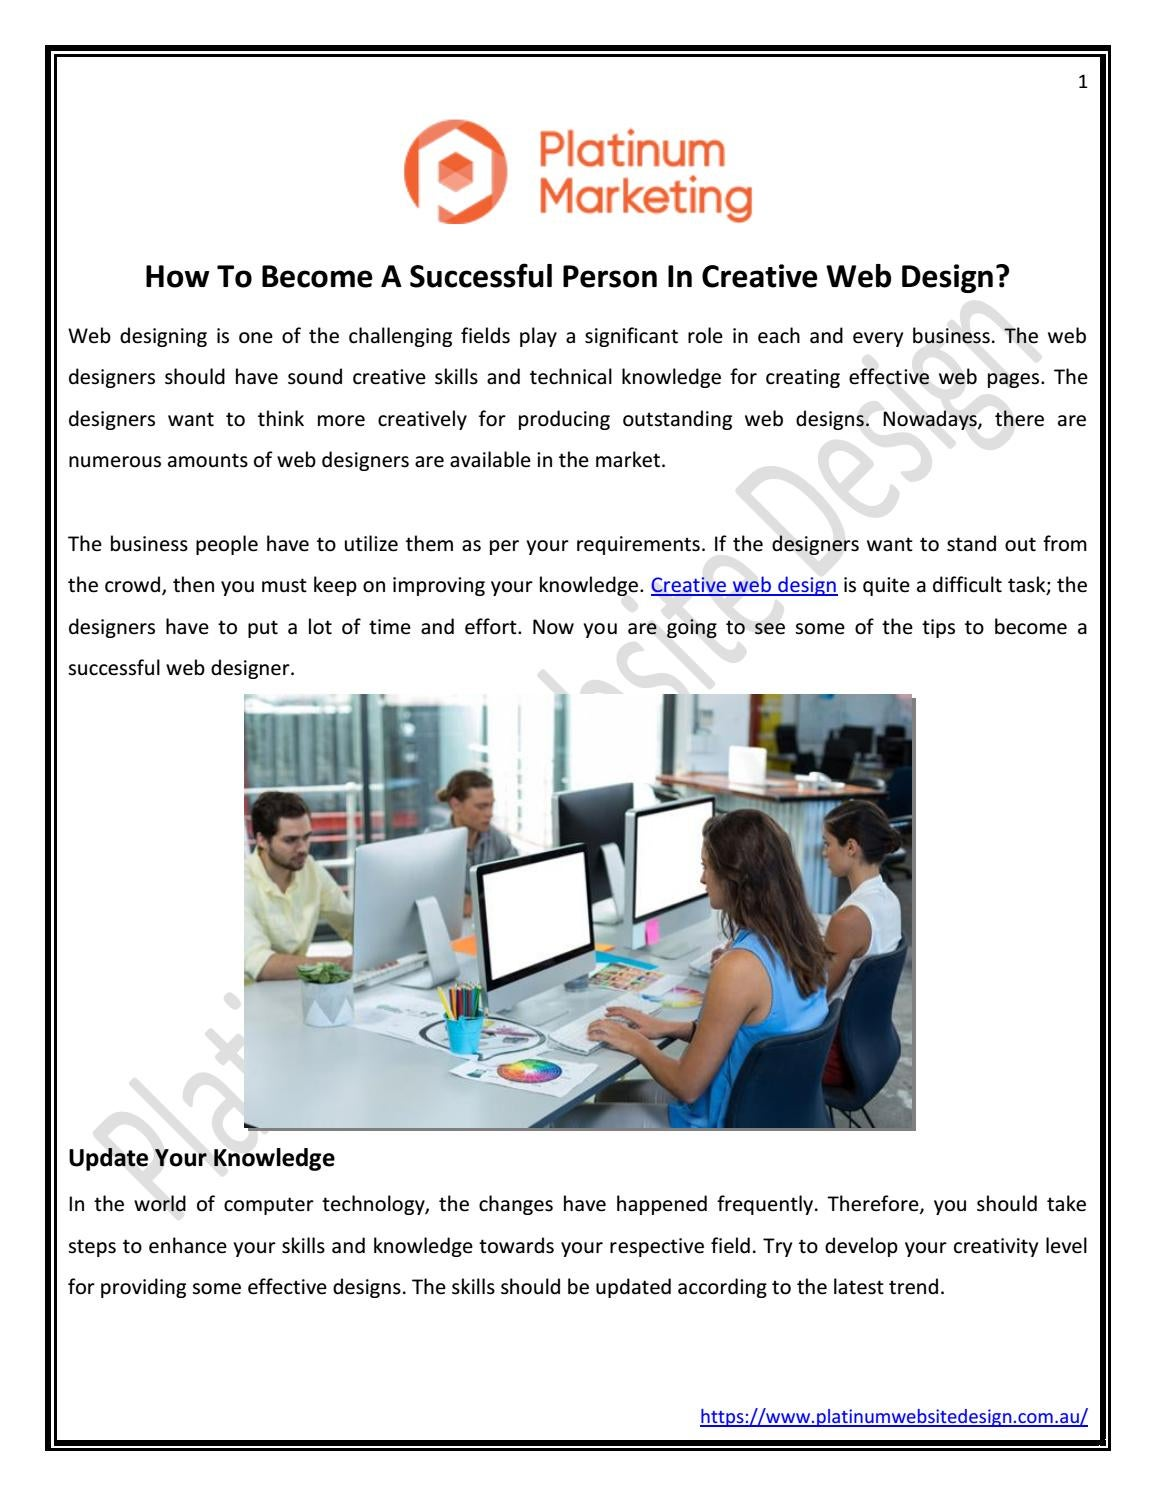 How To Become A Successful Person In Creative Web Design By Platinum Website Design Issuu